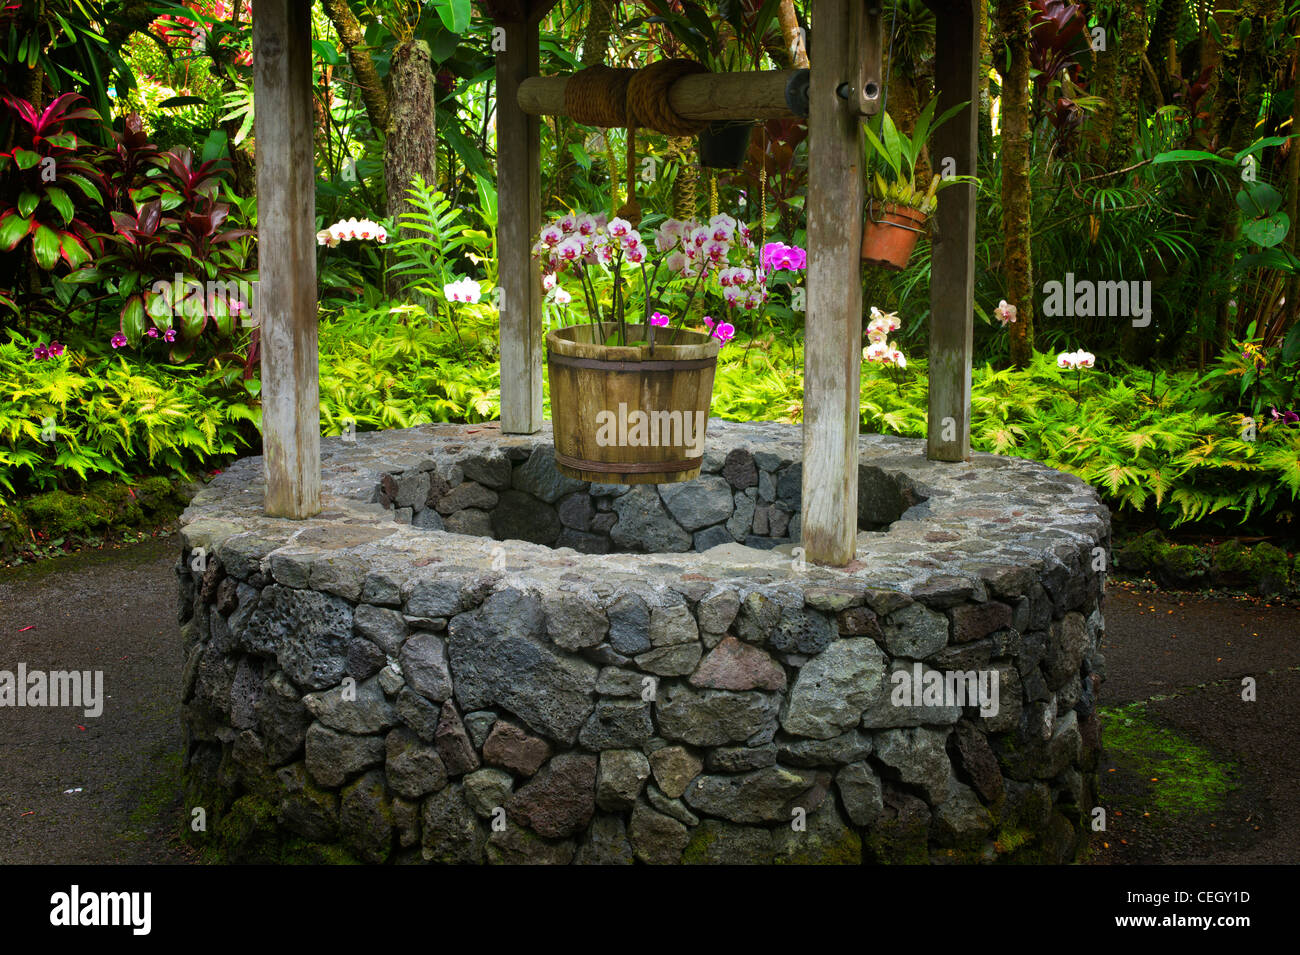 Wishing Well. Hawaii Tropical Botanical Gardens. Hawaii, la Big Island. Immagini Stock